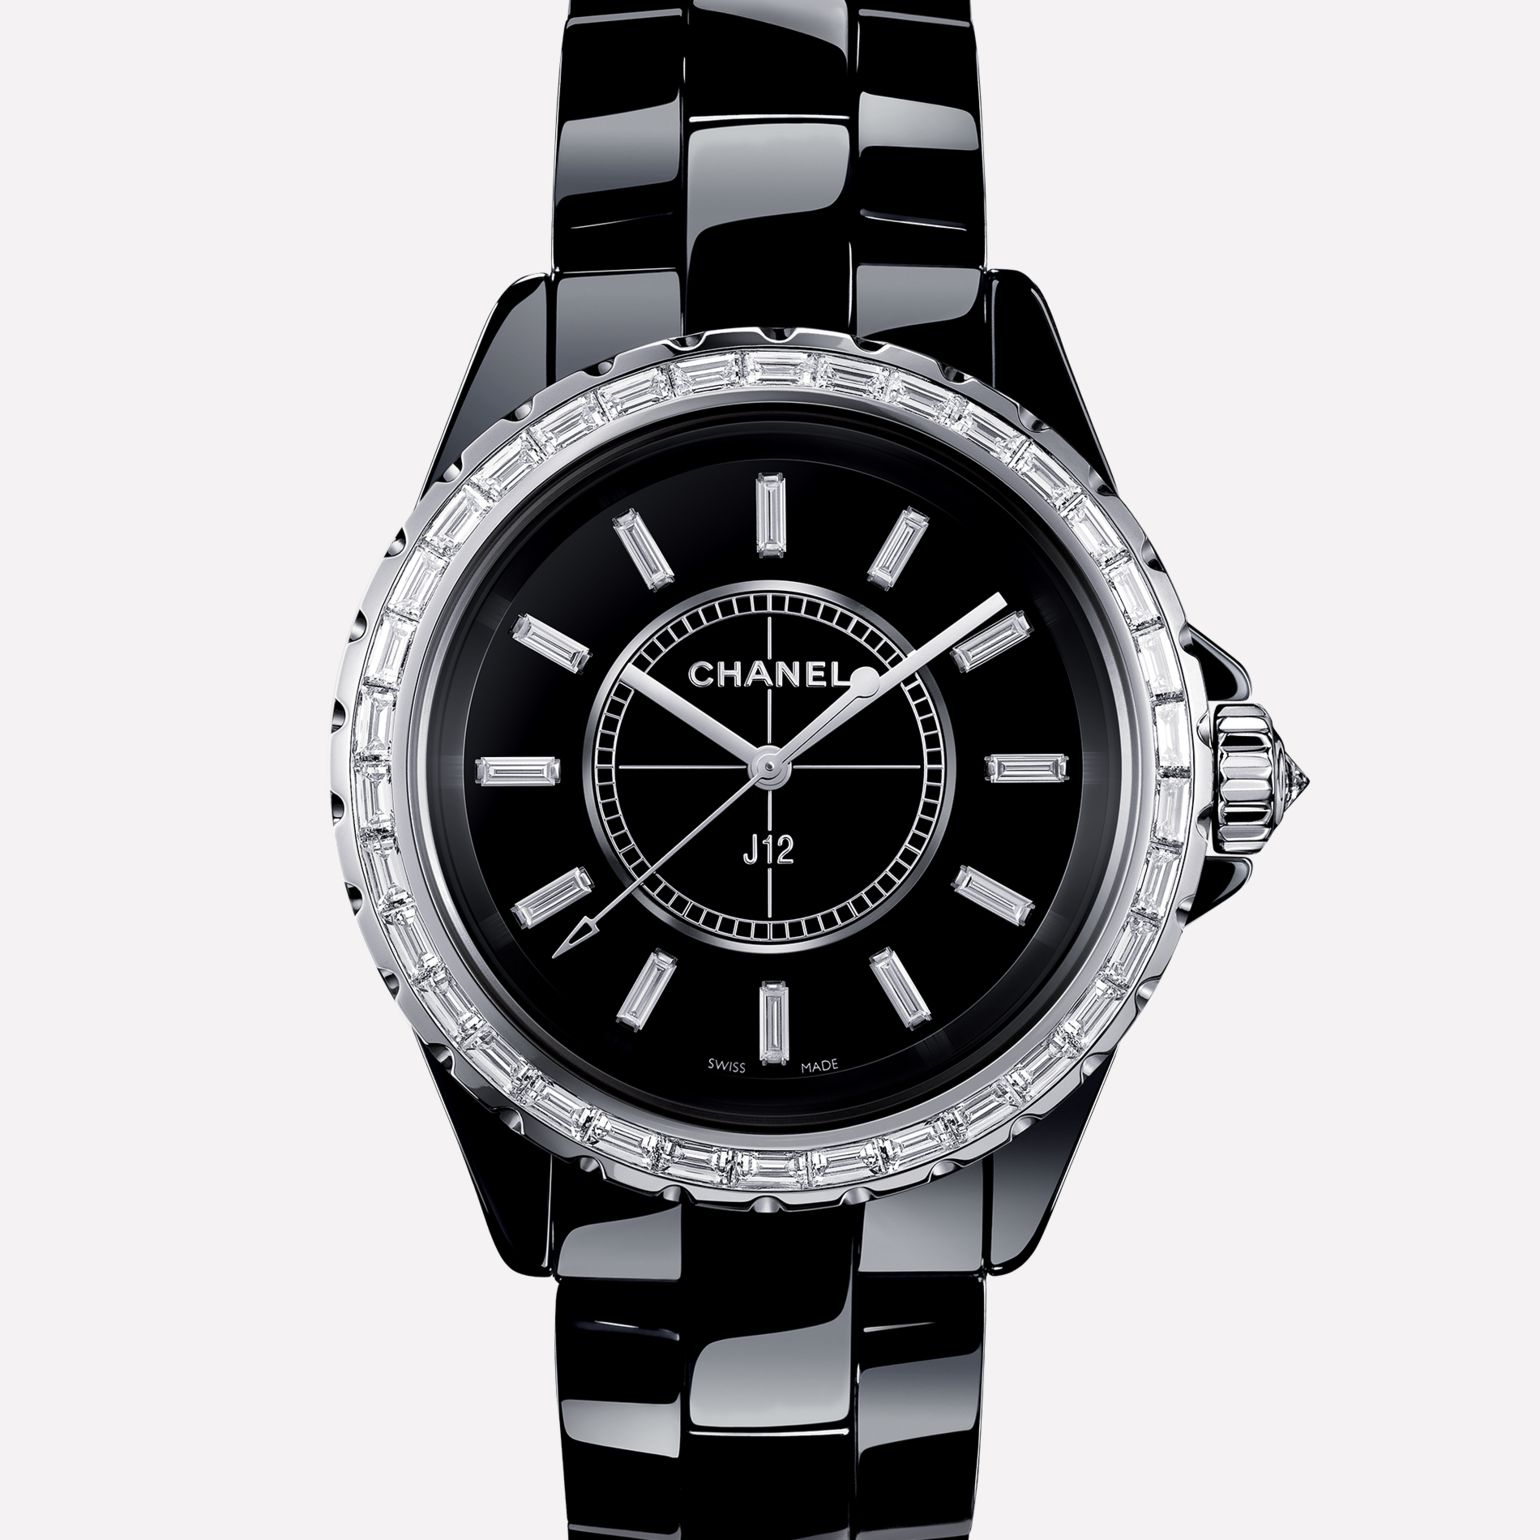 J12 Jewellery Watch Black highly resistant ceramic and white gold, baguette cut diamond bezel and indicators